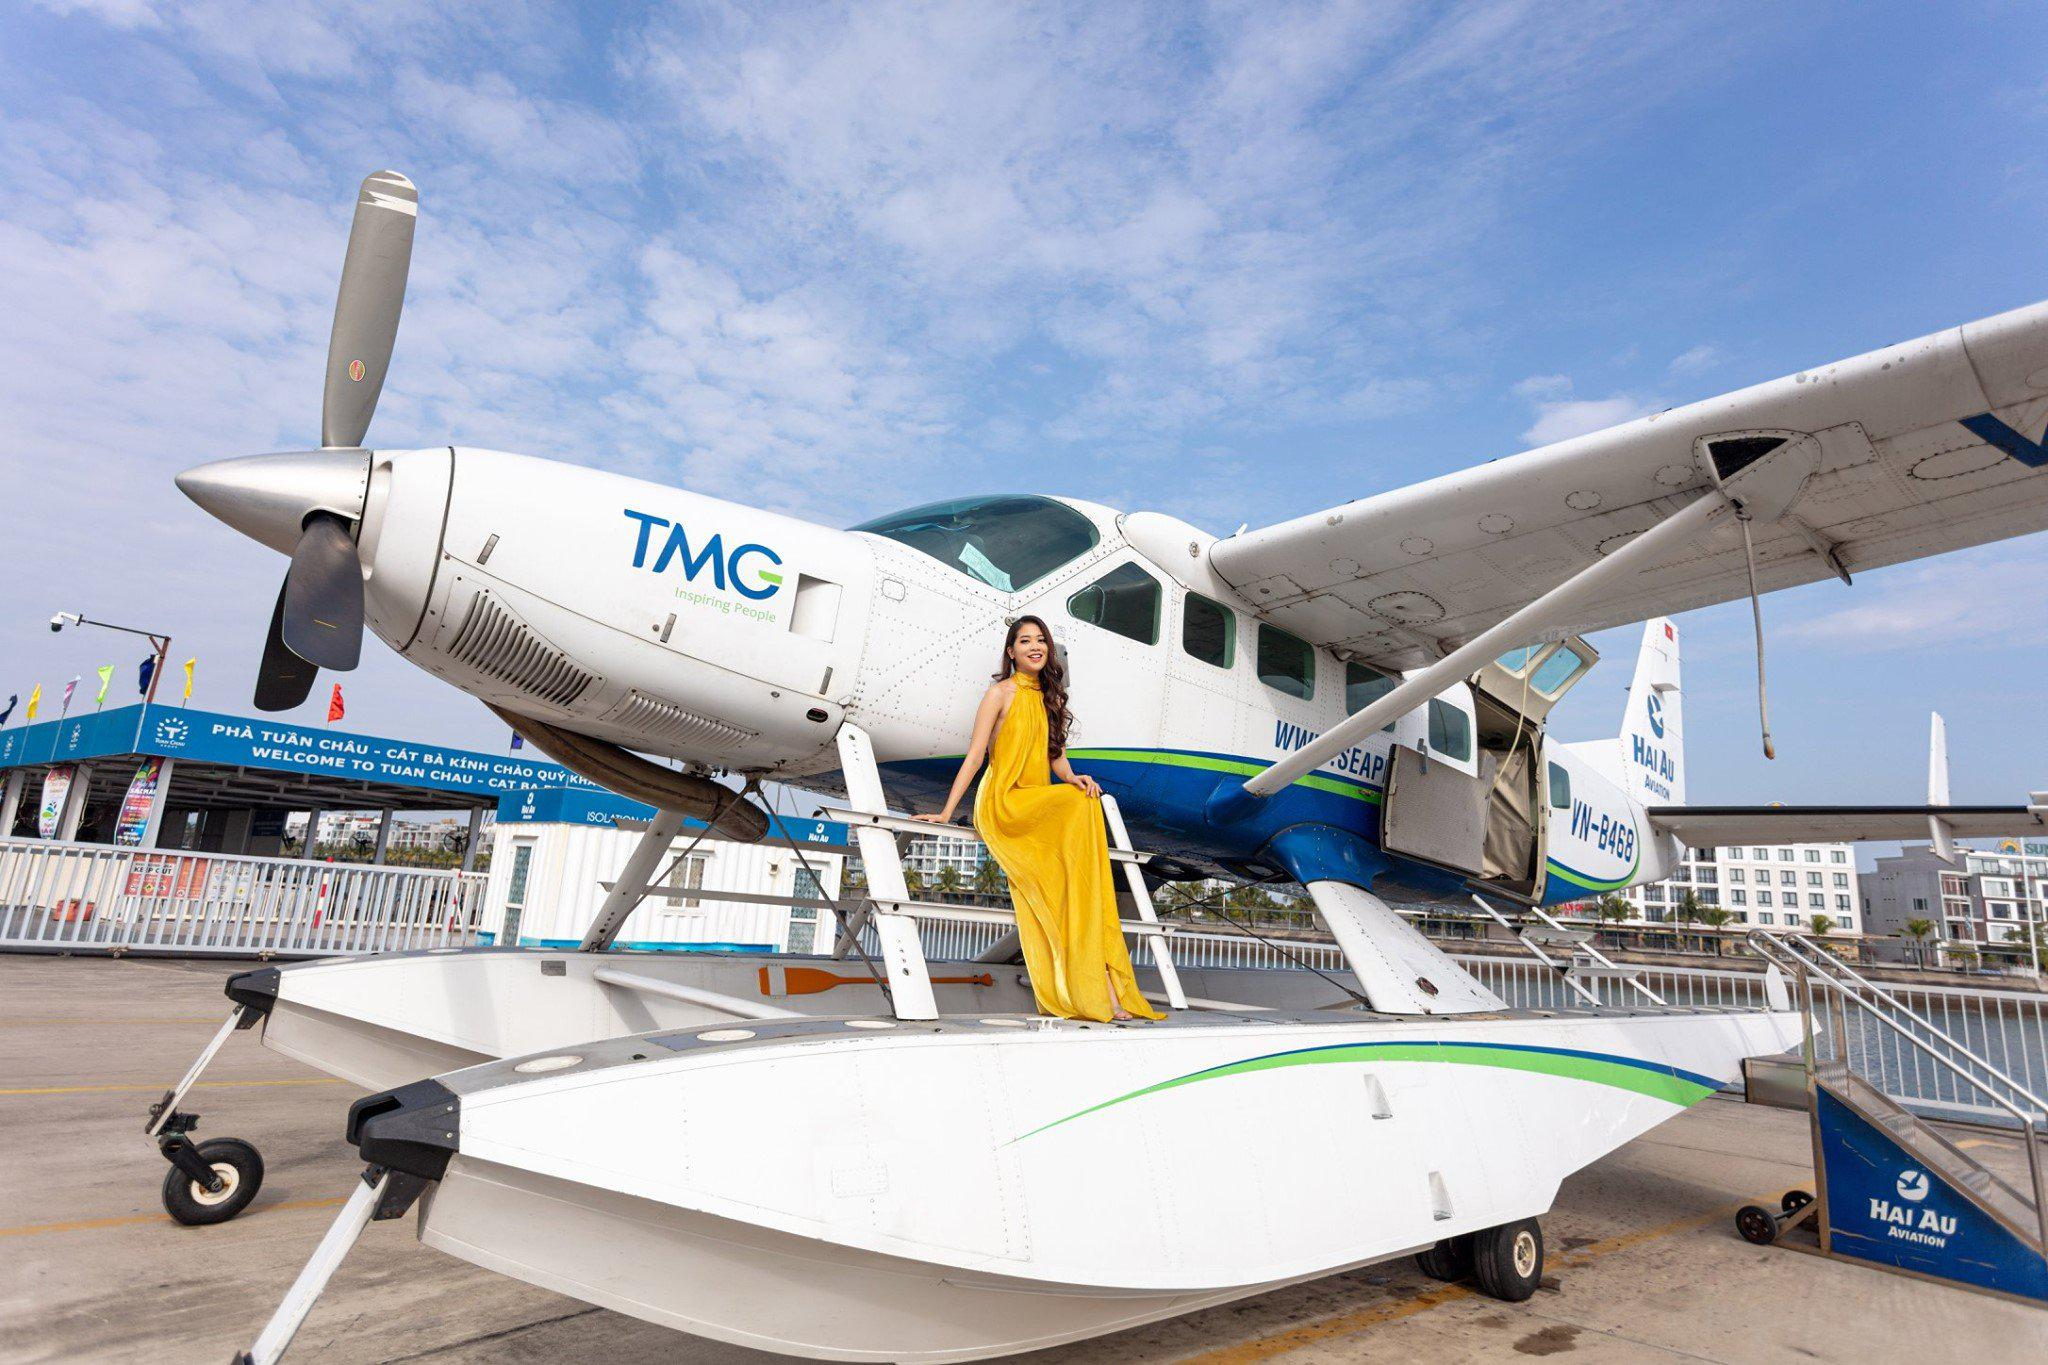 Charter Seaplane from Ho Chi Minh to Phu Quoc Island